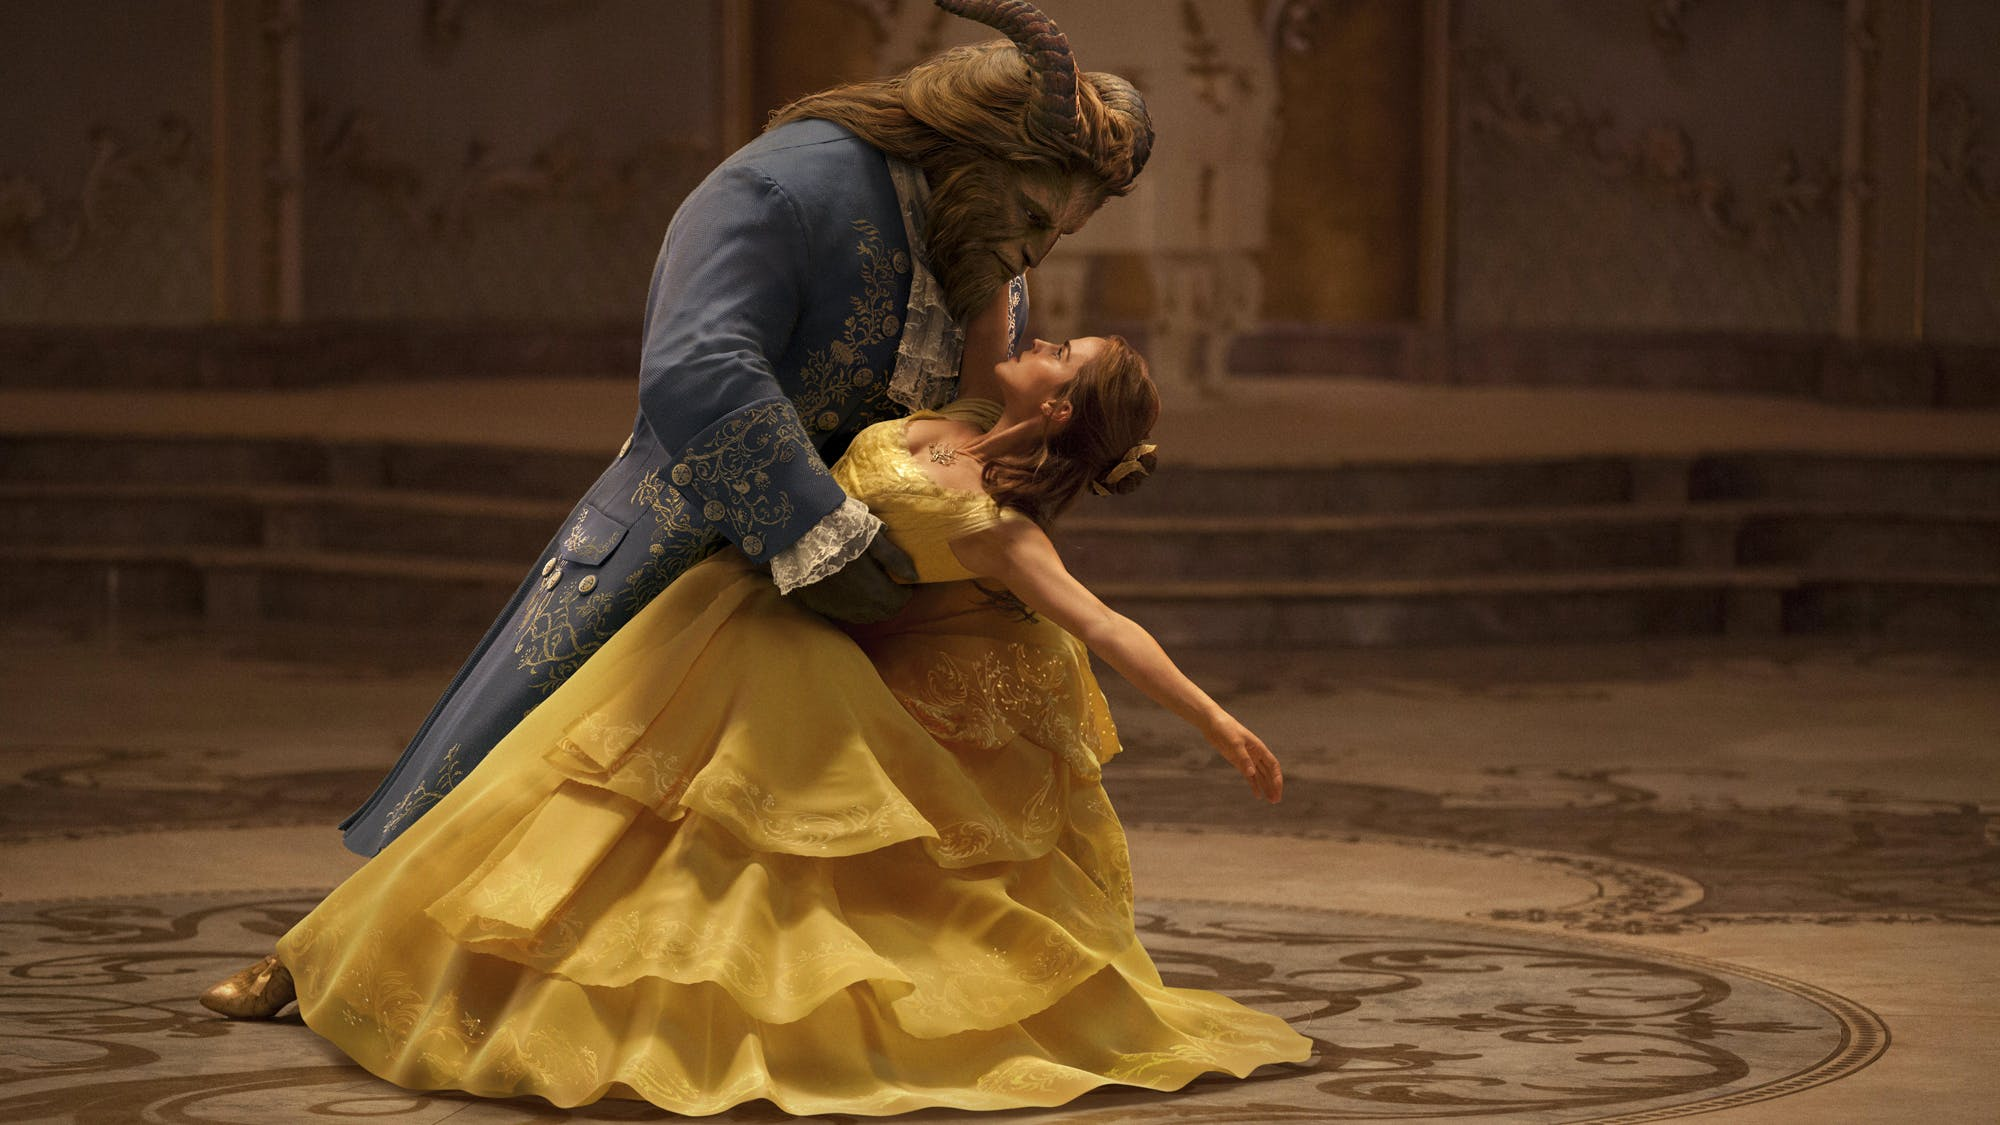 Beauty and the beast phim theo phong cách Cottagecore